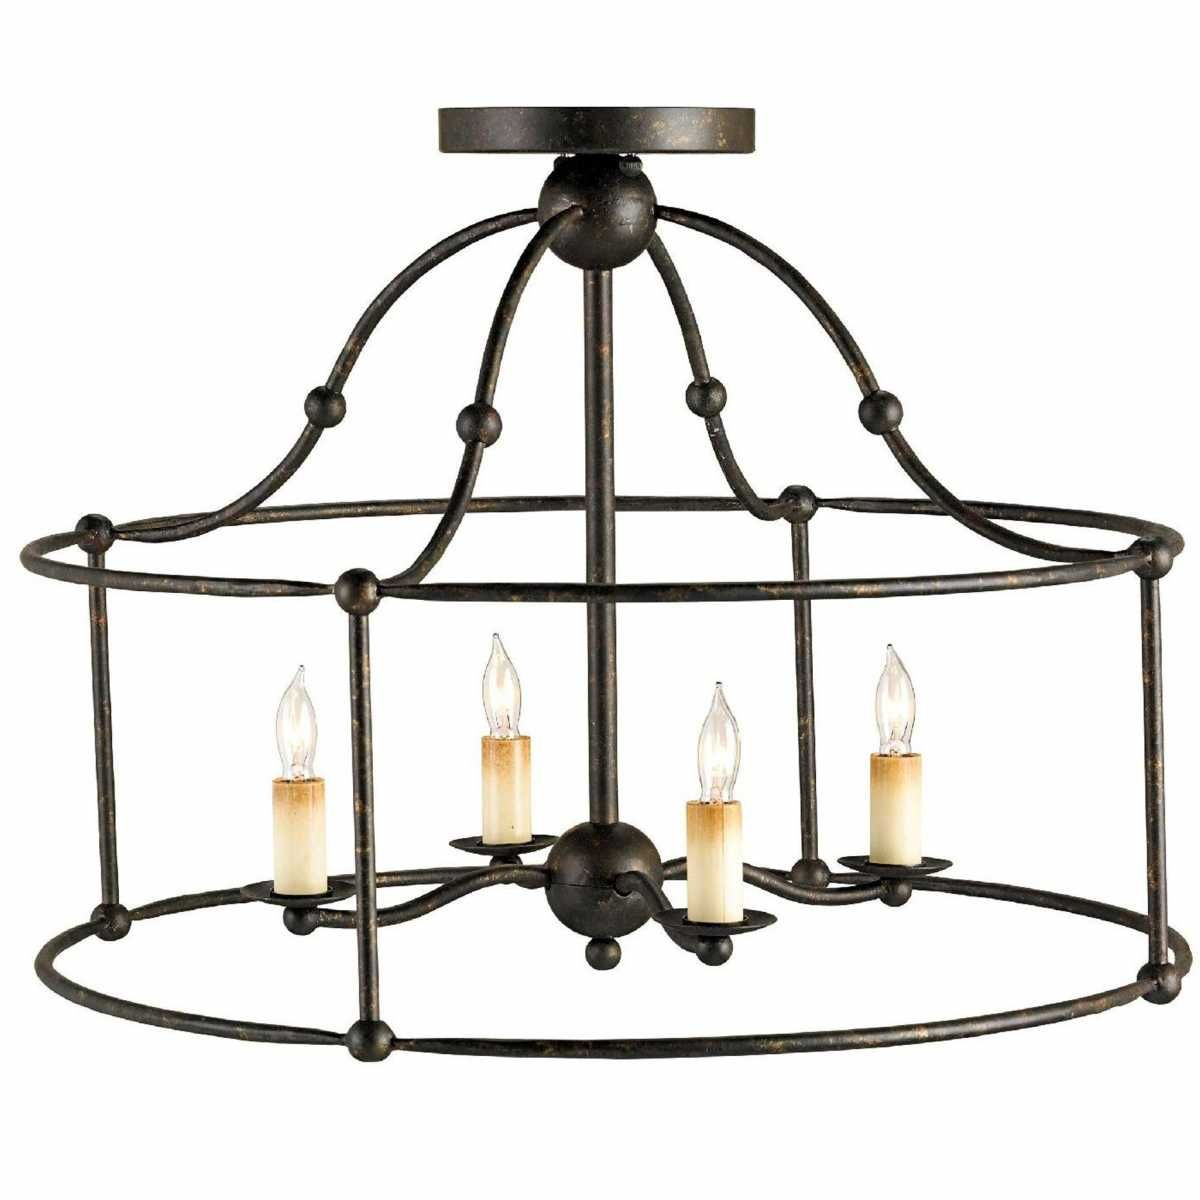 Currey and company fitzjames hanging pendant lantern chandeliers currey and company fitzjames hanging pendant lantern chandeliers lighting candelabra inc aloadofball Gallery